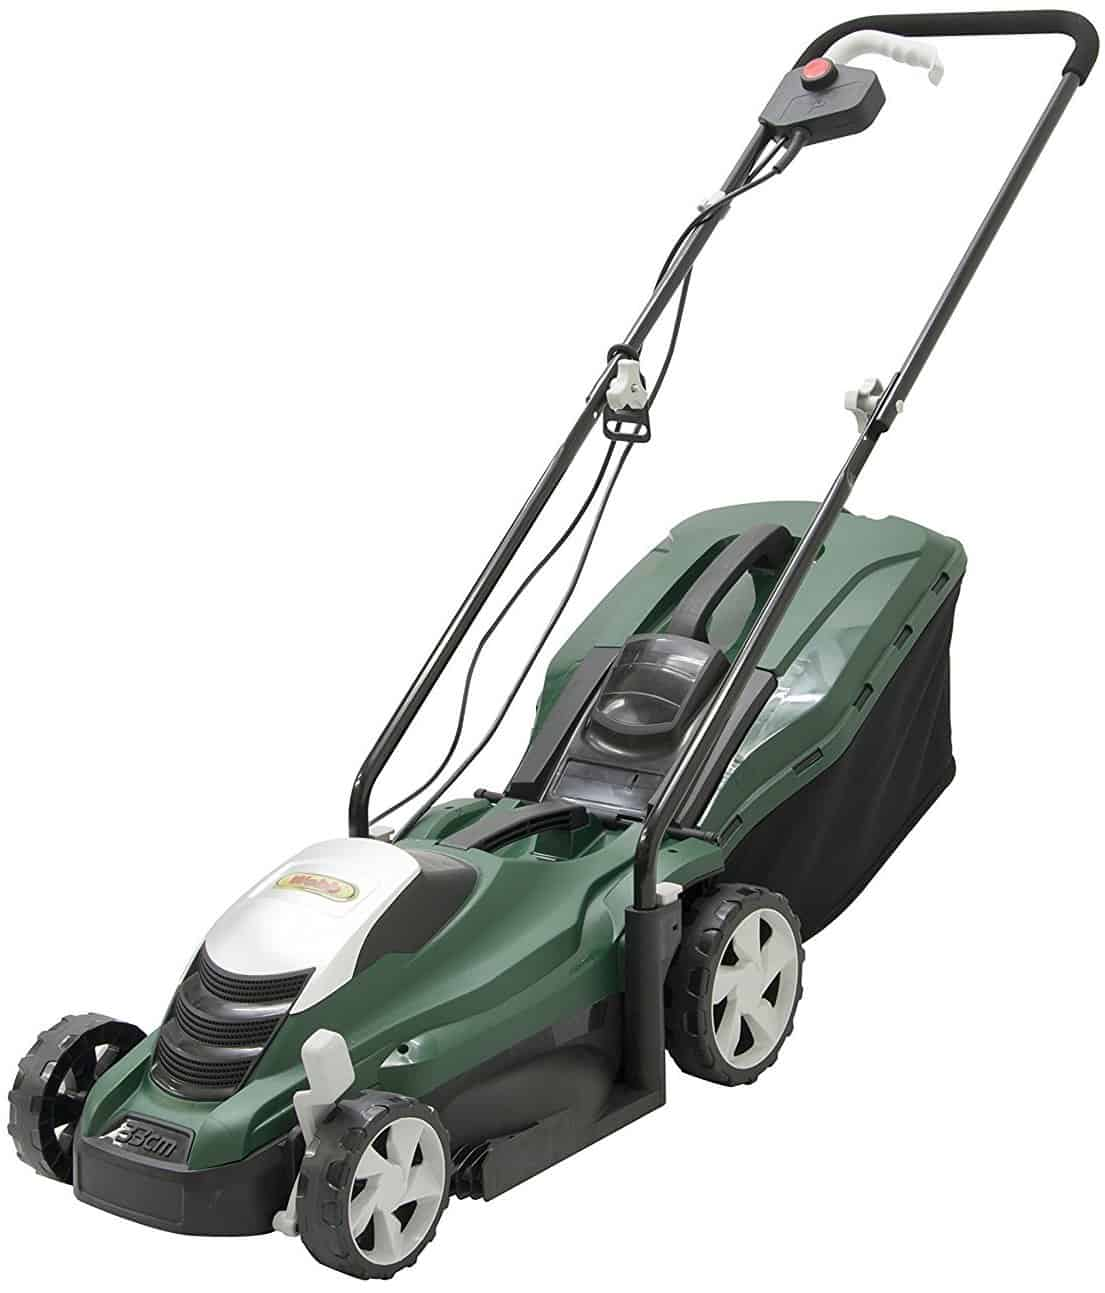 Webb WEER33 ER33 Lawnmower